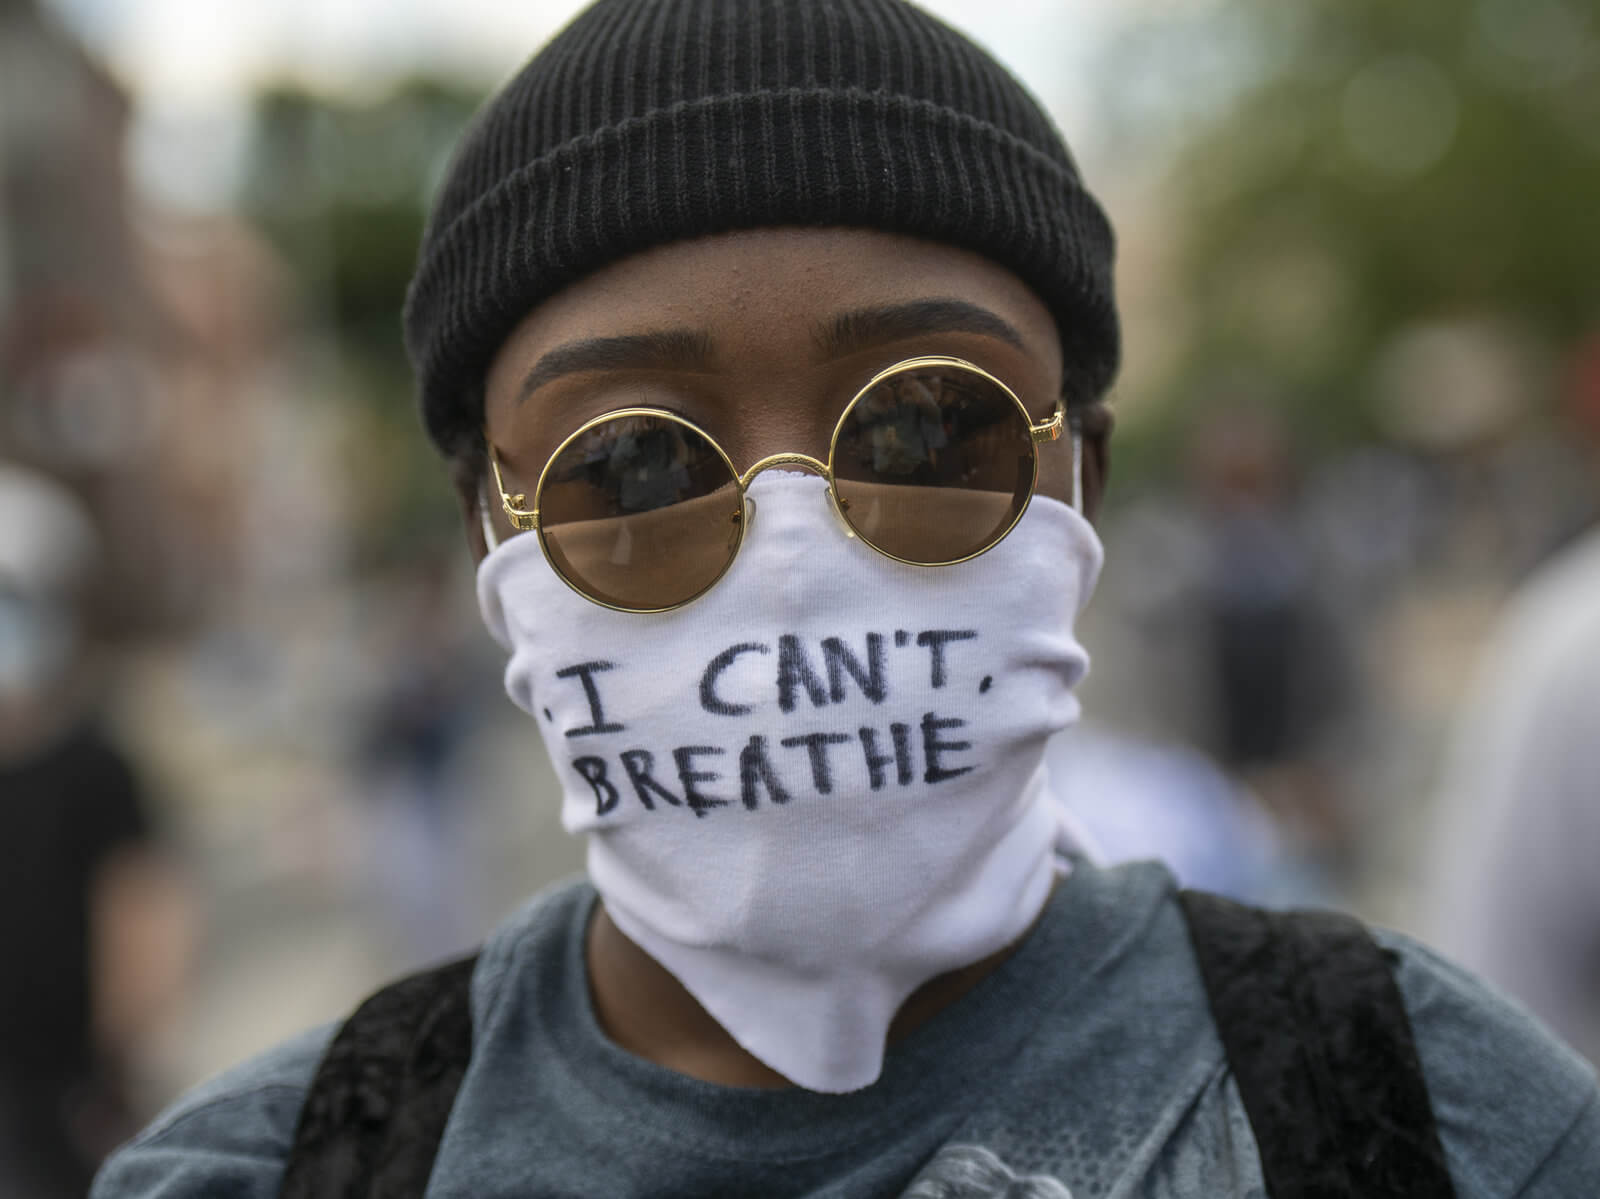 Protesting Racism Versus Risking COVID-19: 'I Wouldn't Weigh These Crises Separately'